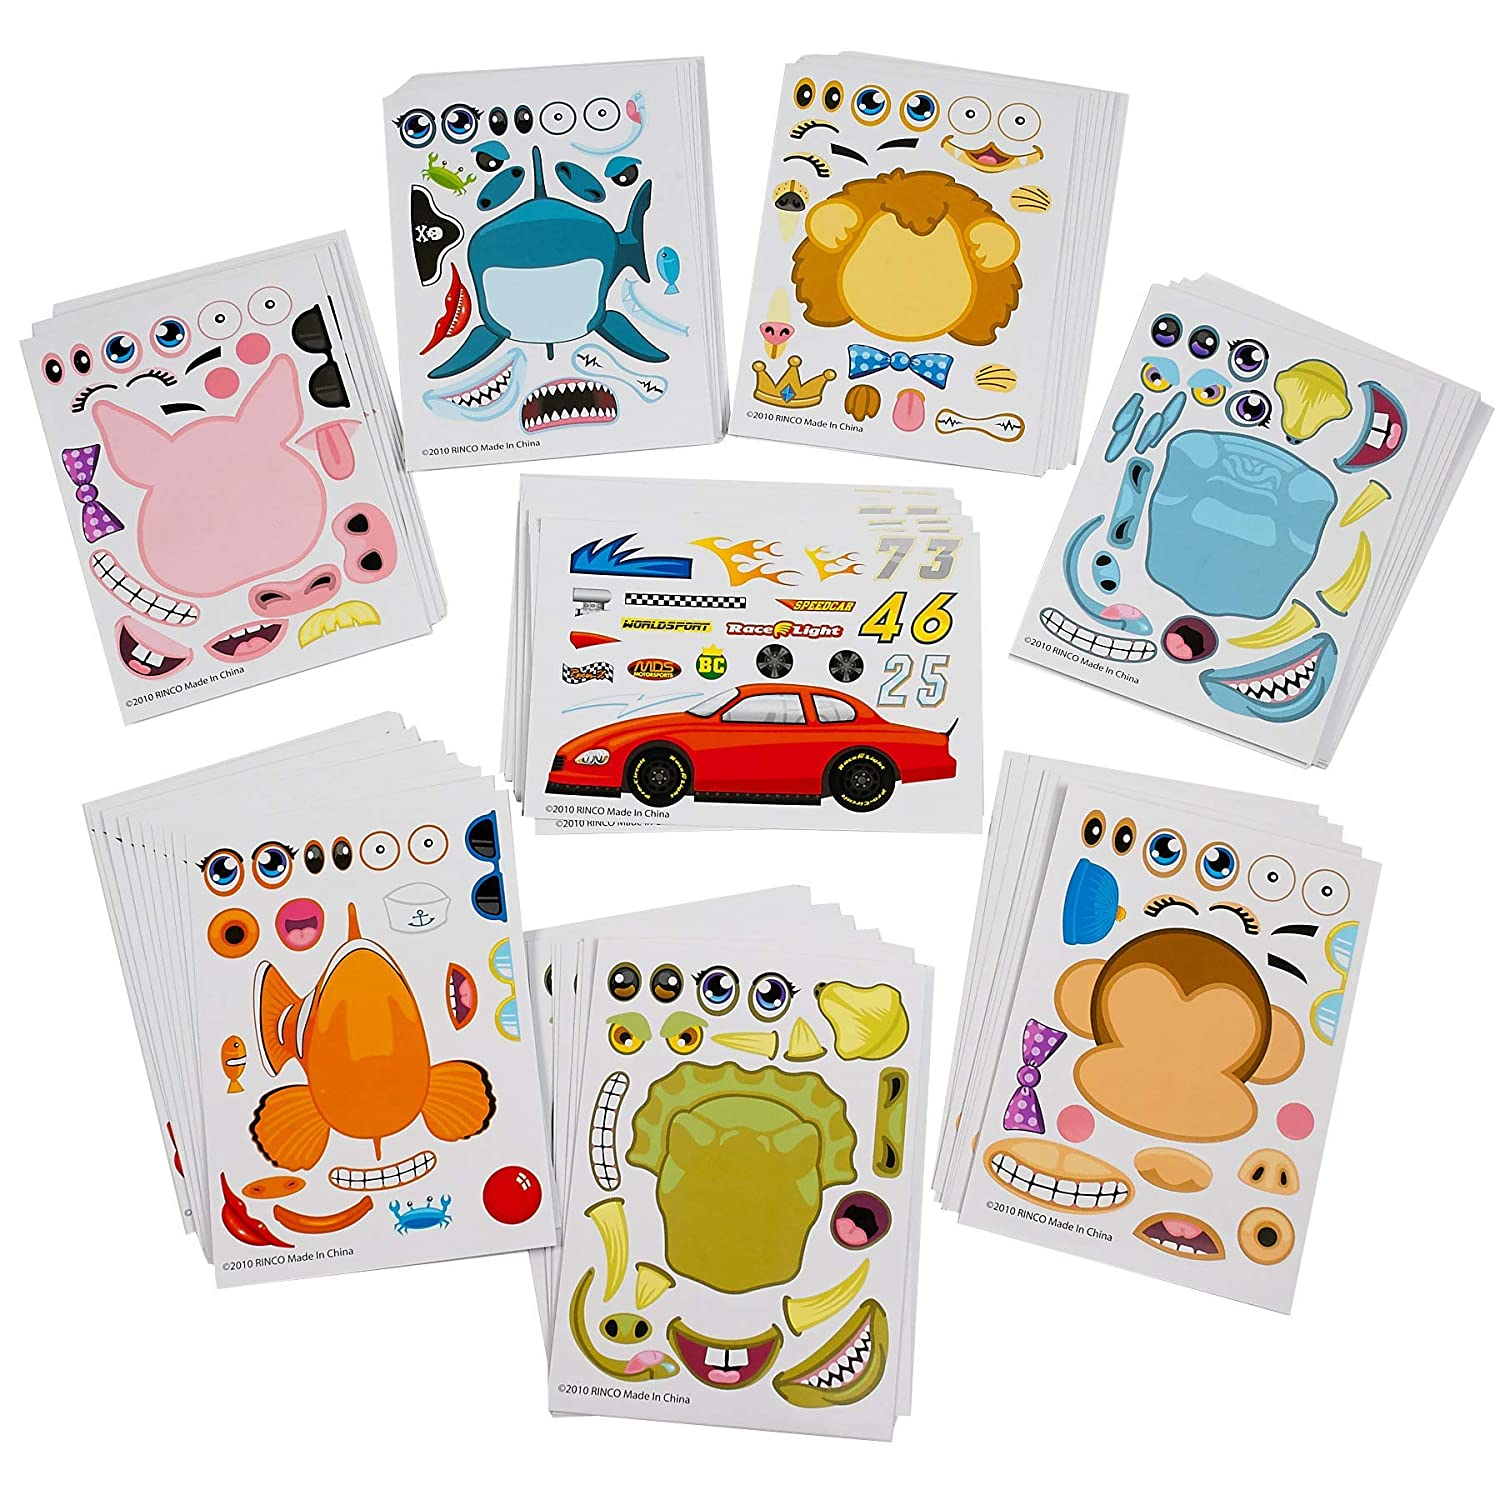 Kicko make your own sticker 96 stickers assortment includes zoo animals cars sea creature and more for kids arts parties birthdays party favors